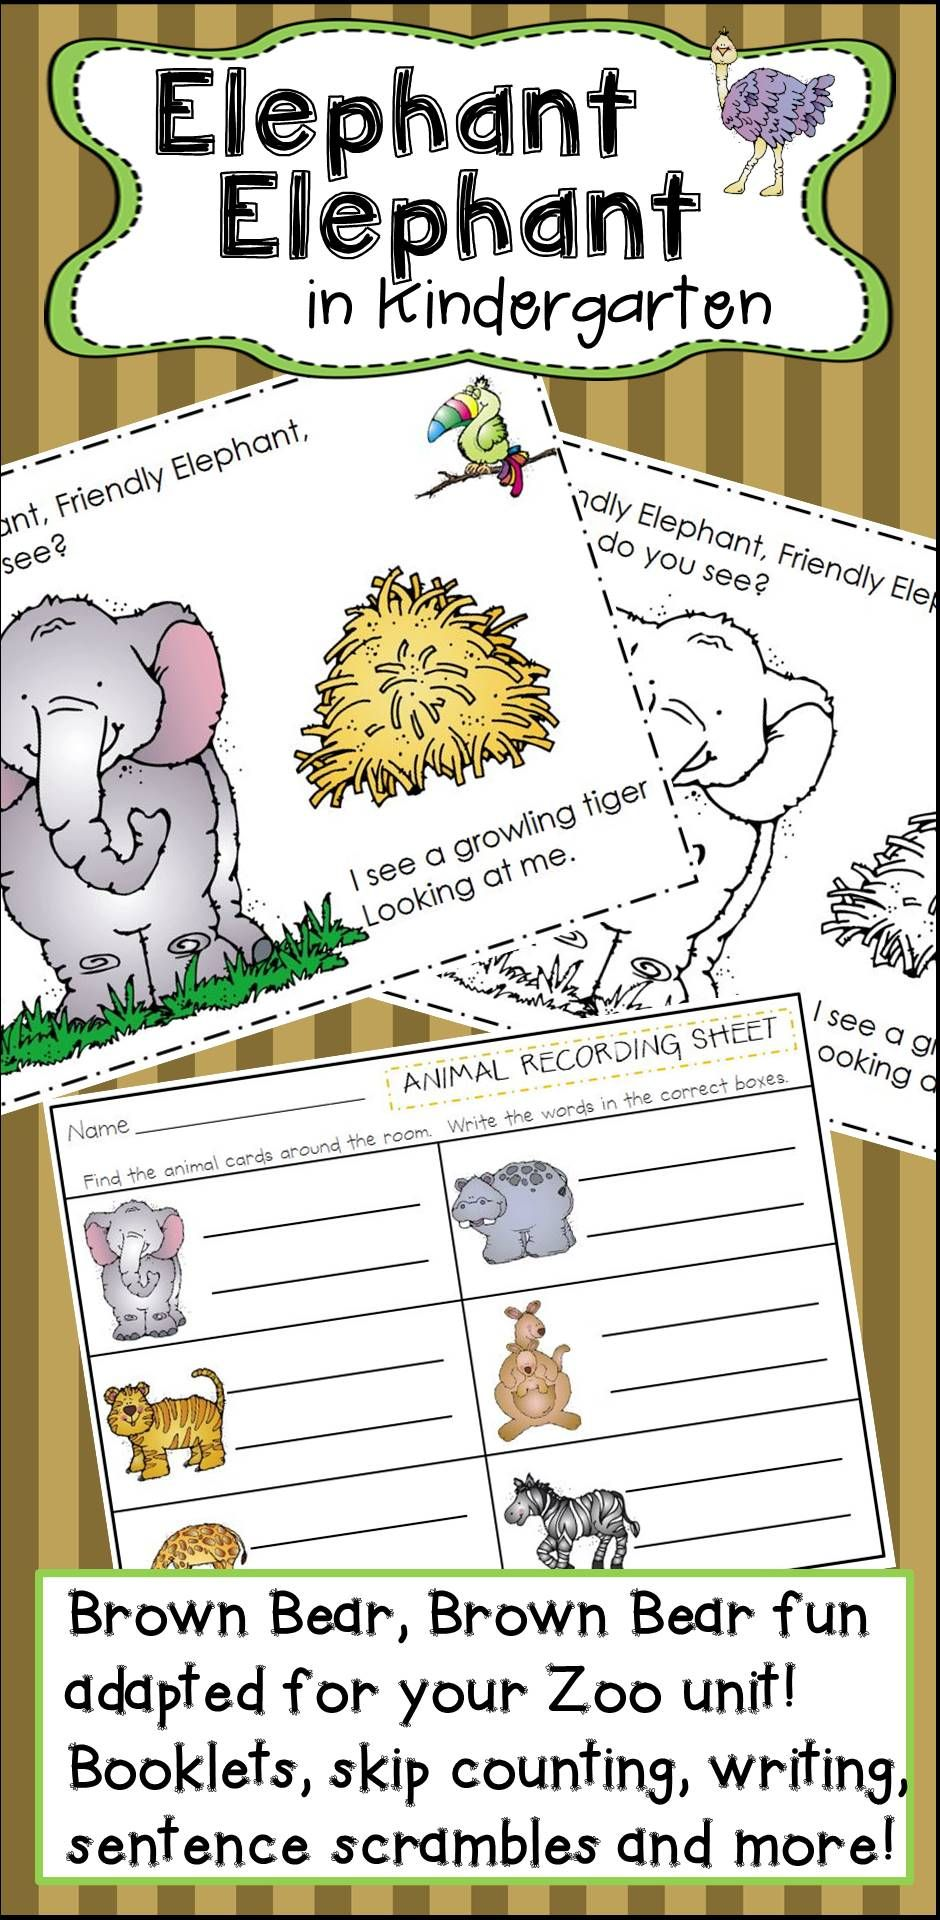 Elephant Elephant Activities For Kindergarten | Kindergarten